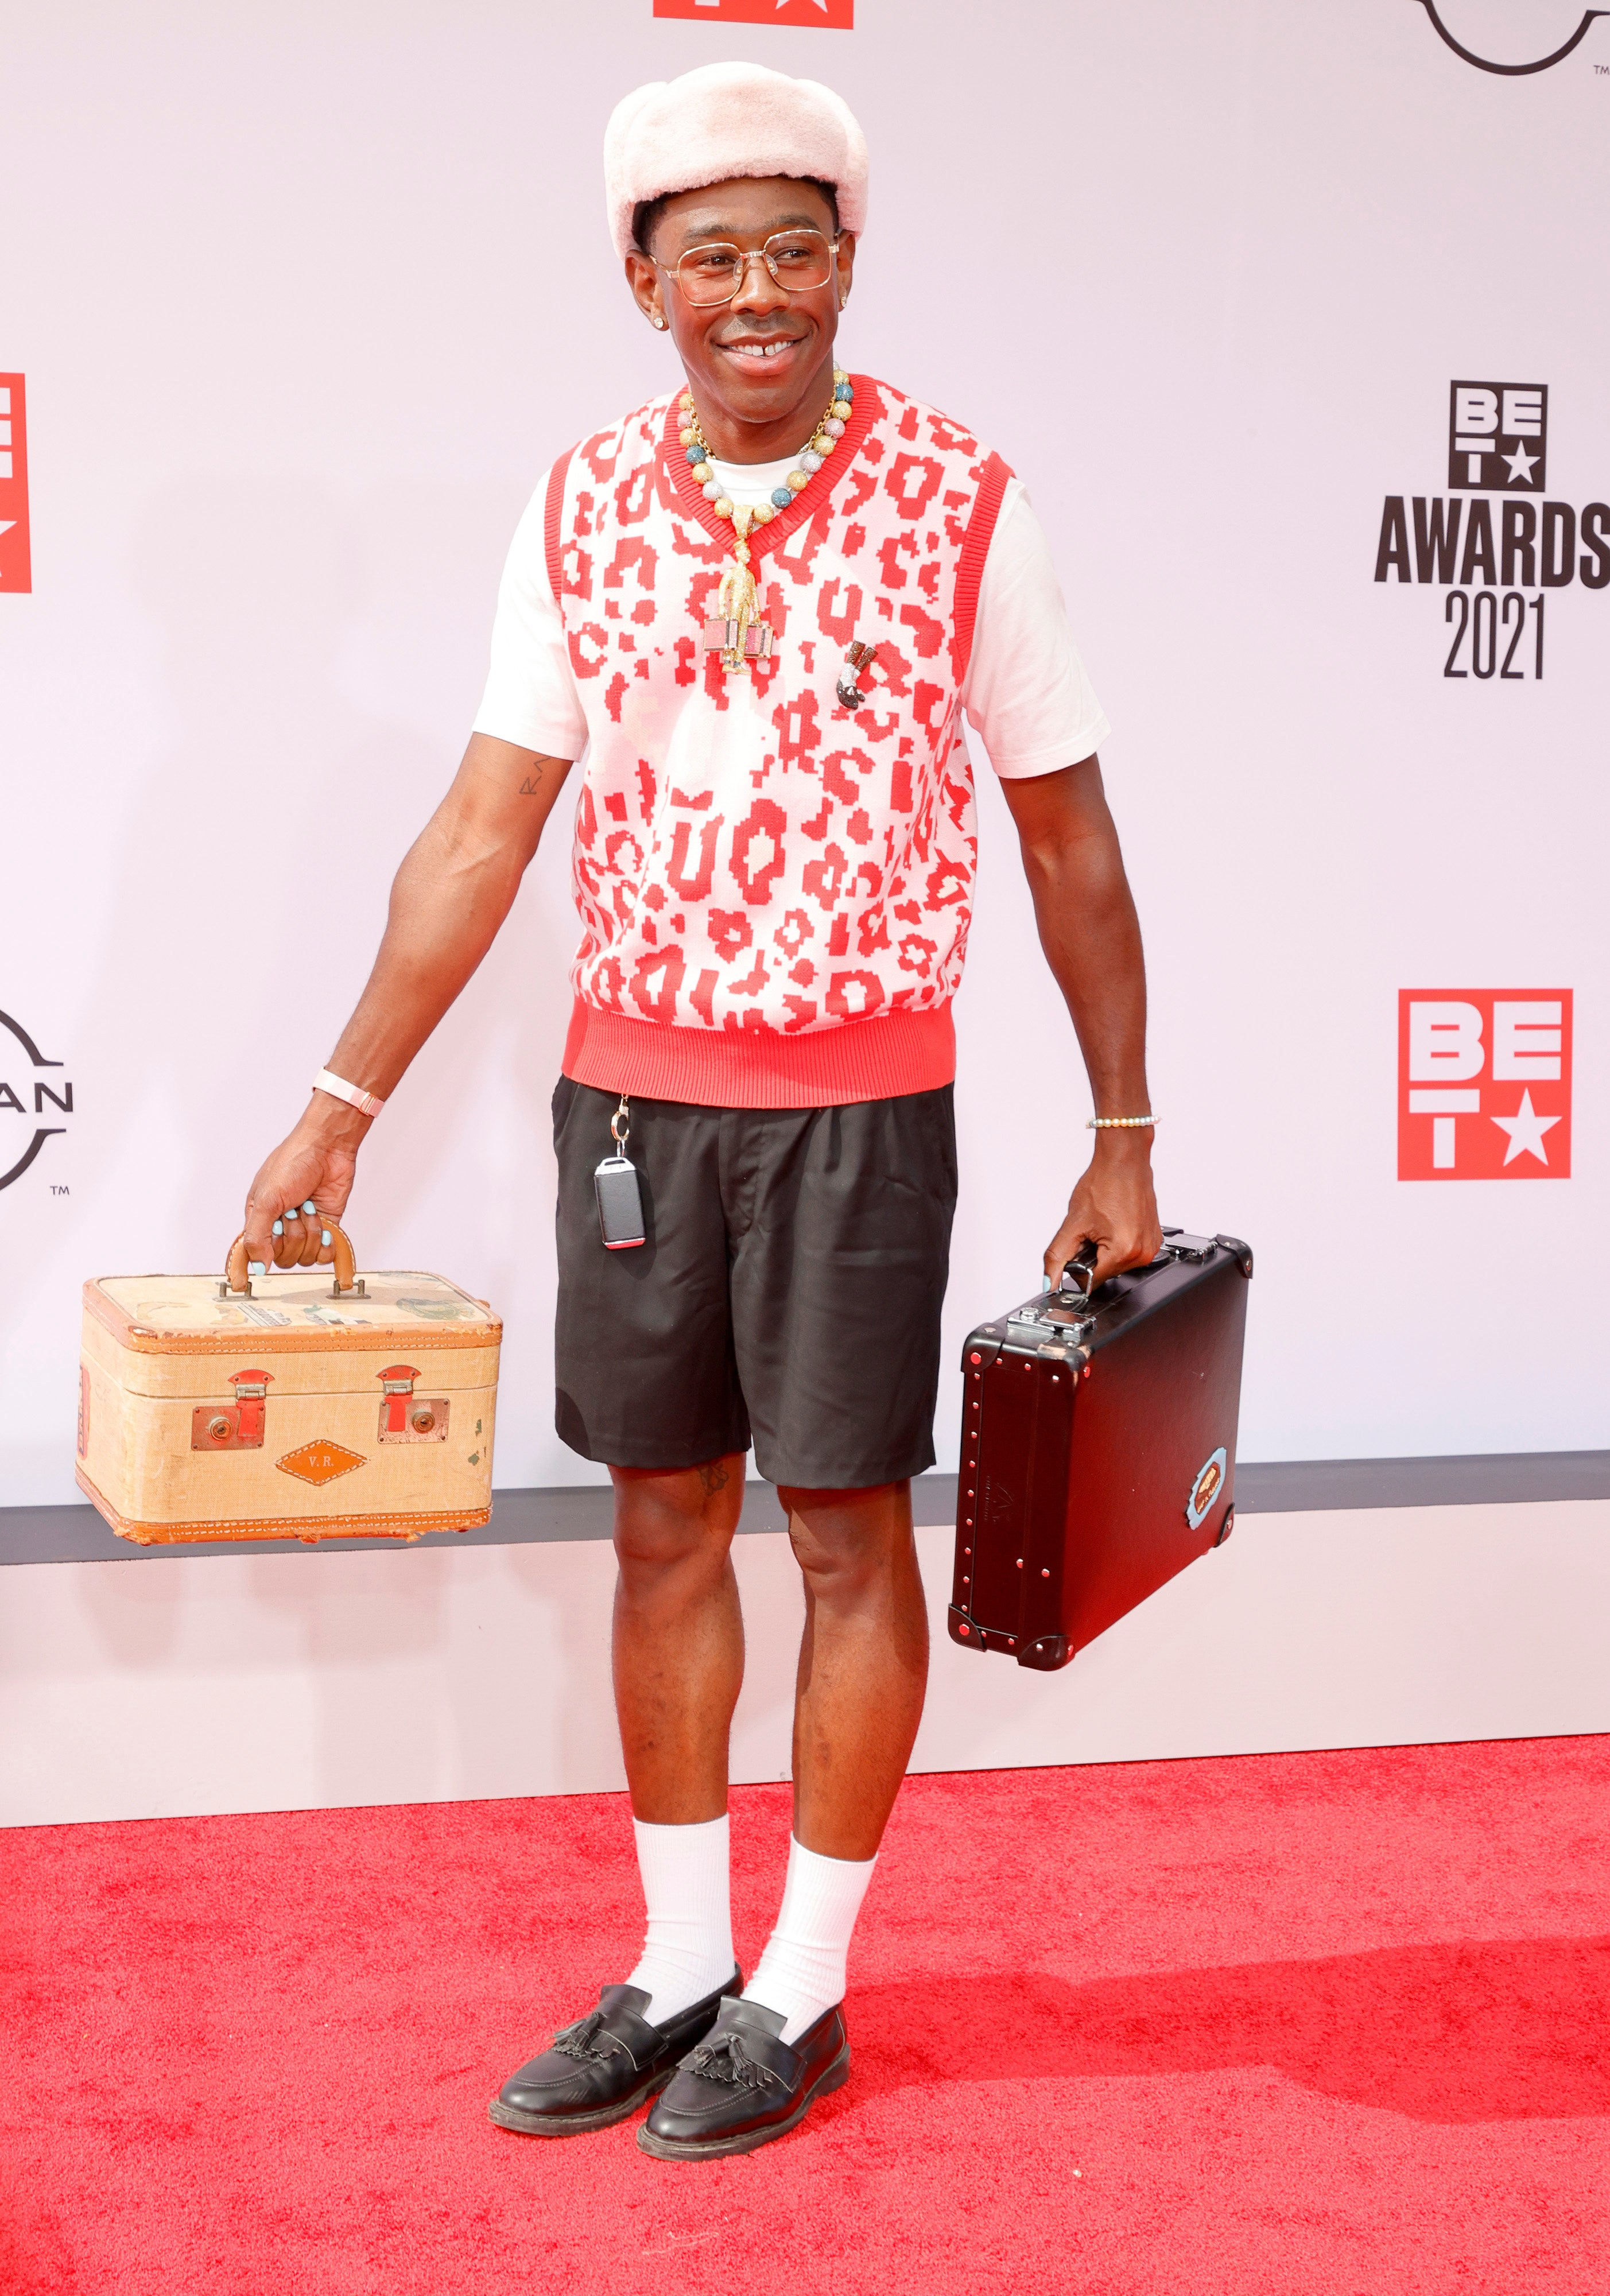 tyler,-the-creator's-got-this-red-carpet-thing-covered